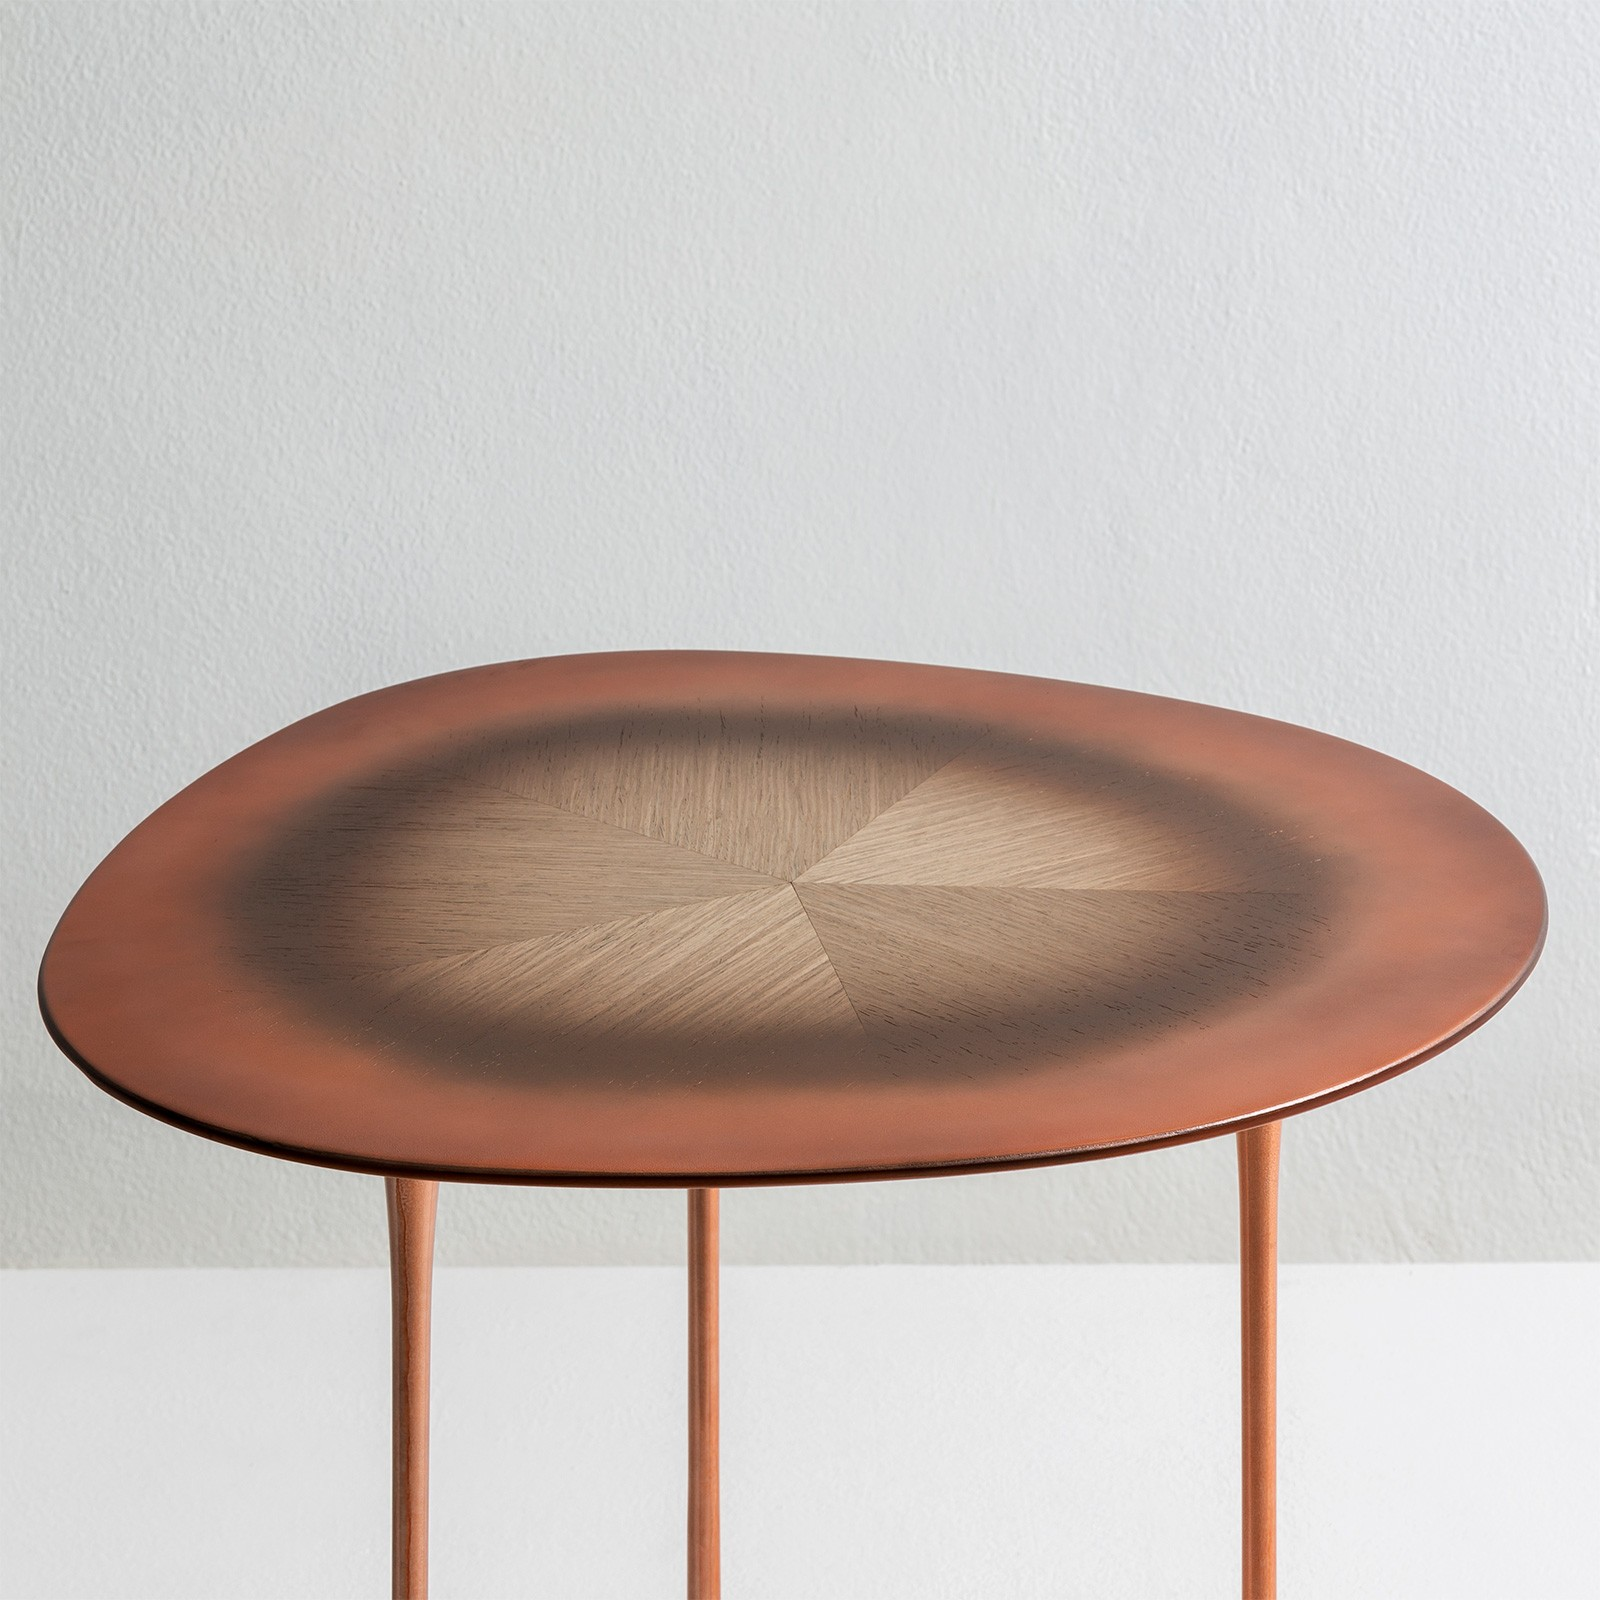 Echo Side Table By Uufie Rossana Orlandi